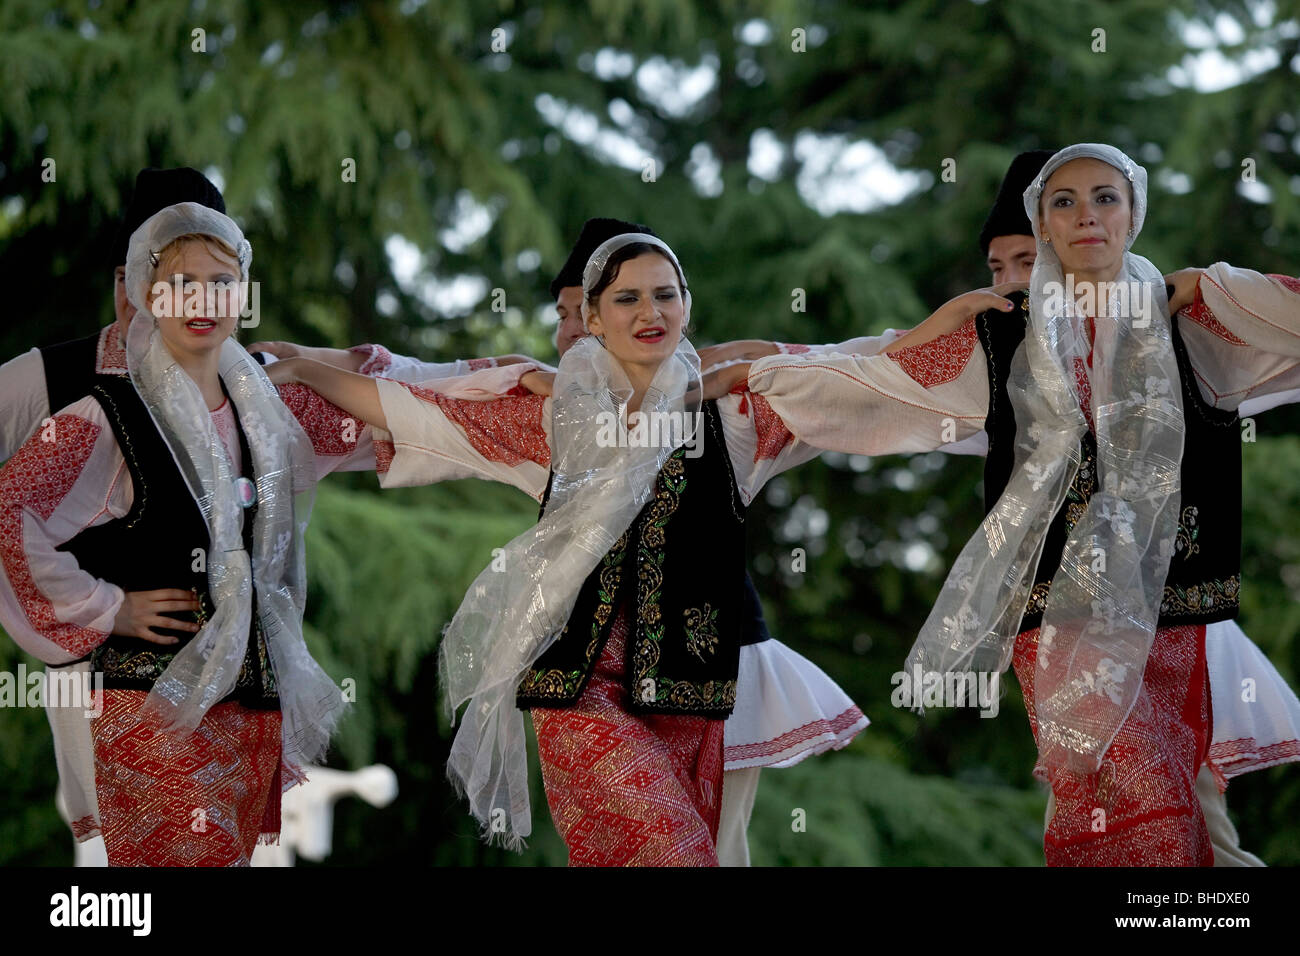 Costume Folklorique romania,folklore costumes,traditional clothing,international